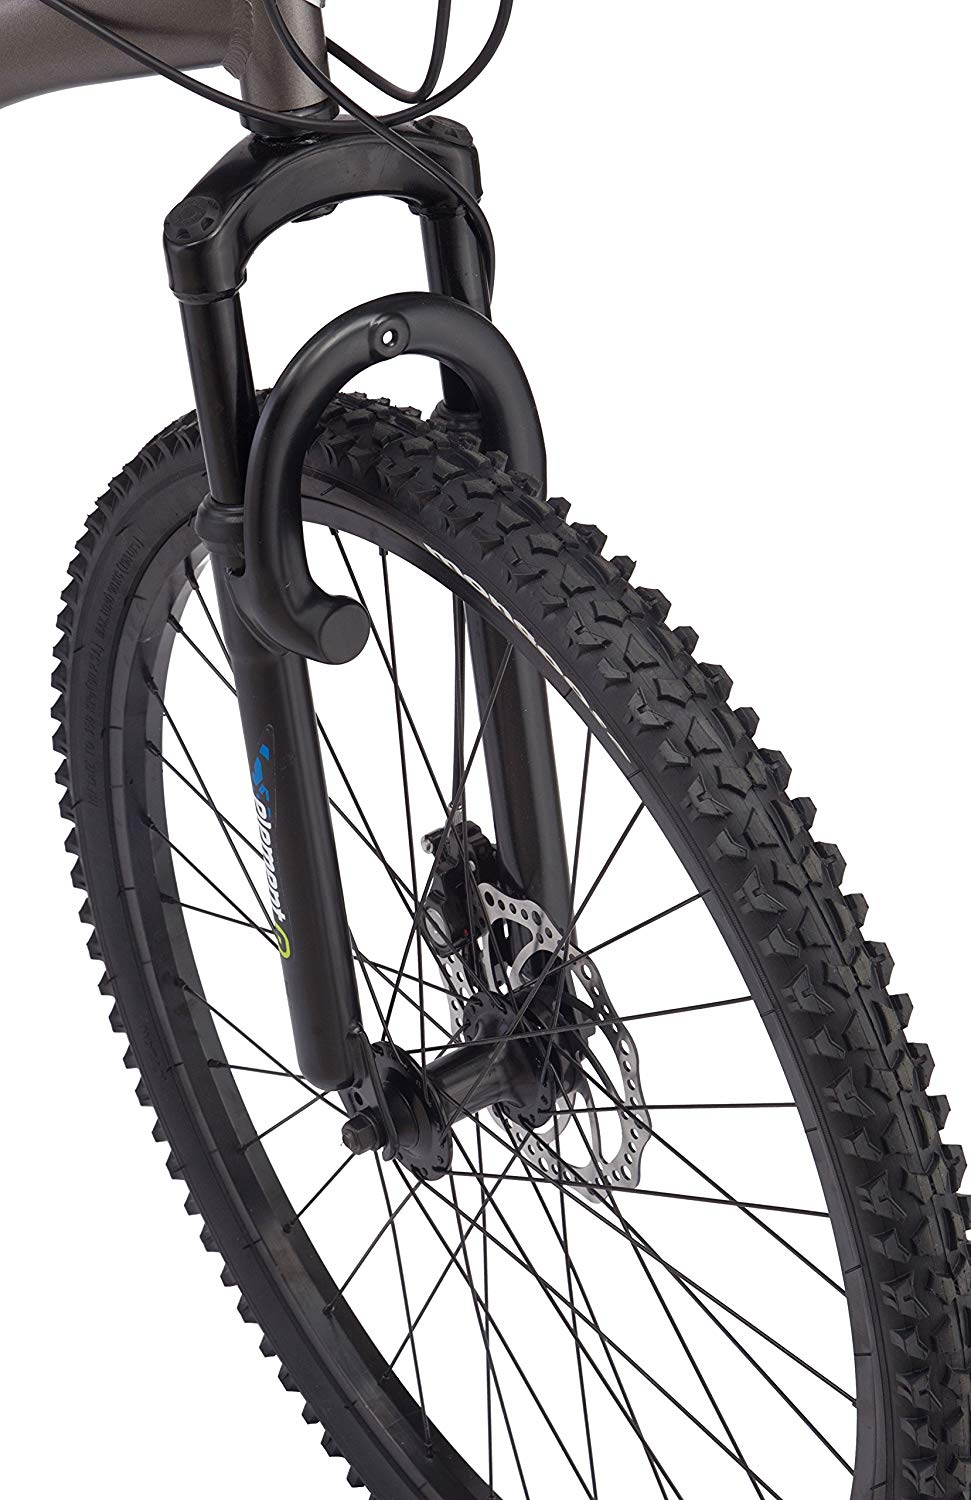 Mongoose Cache 26 suspension fork